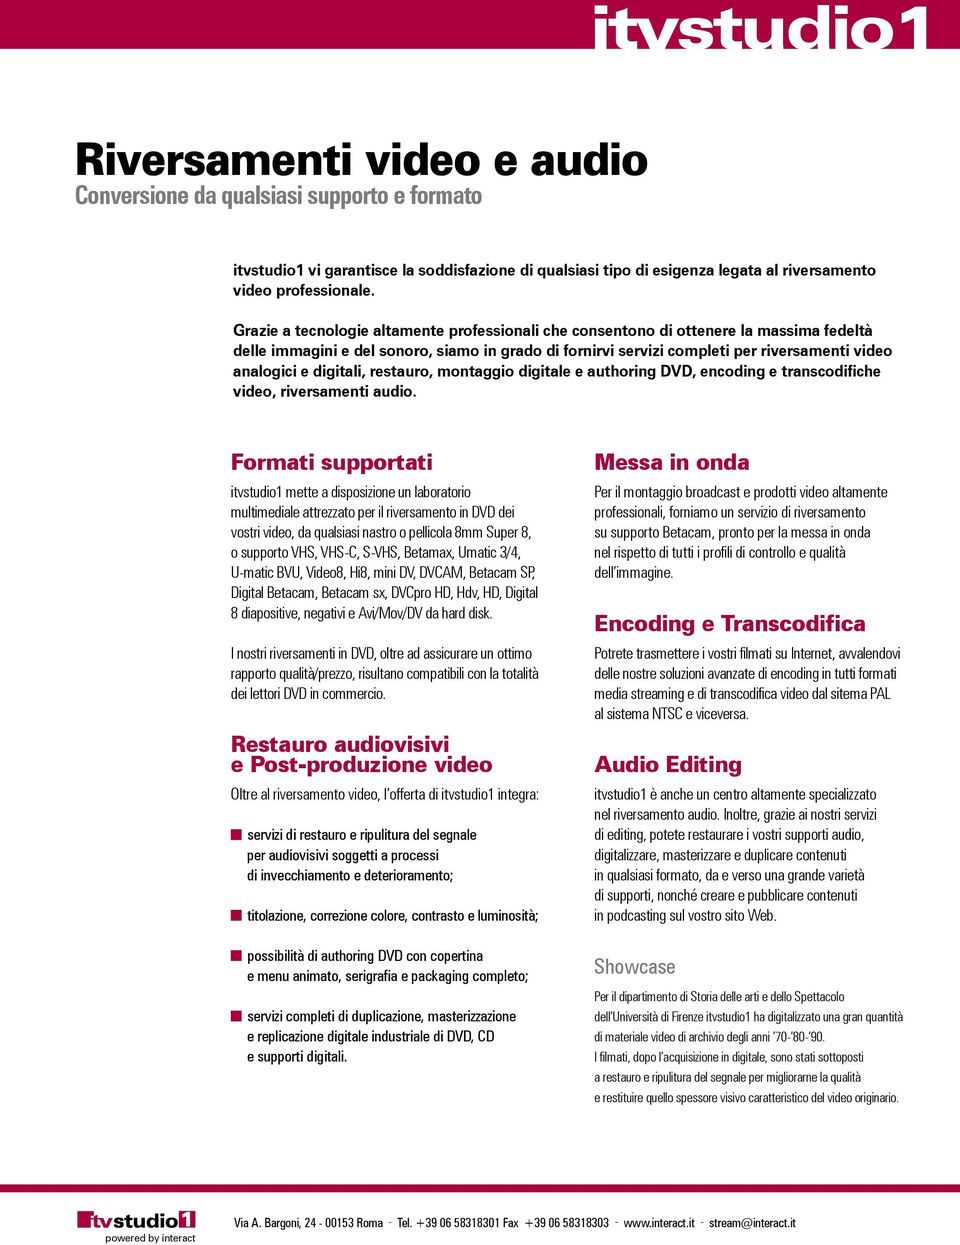 digitali, restauro, montaggio digitale e authoring DVD, encoding e transcodifiche video, riversamenti audio.